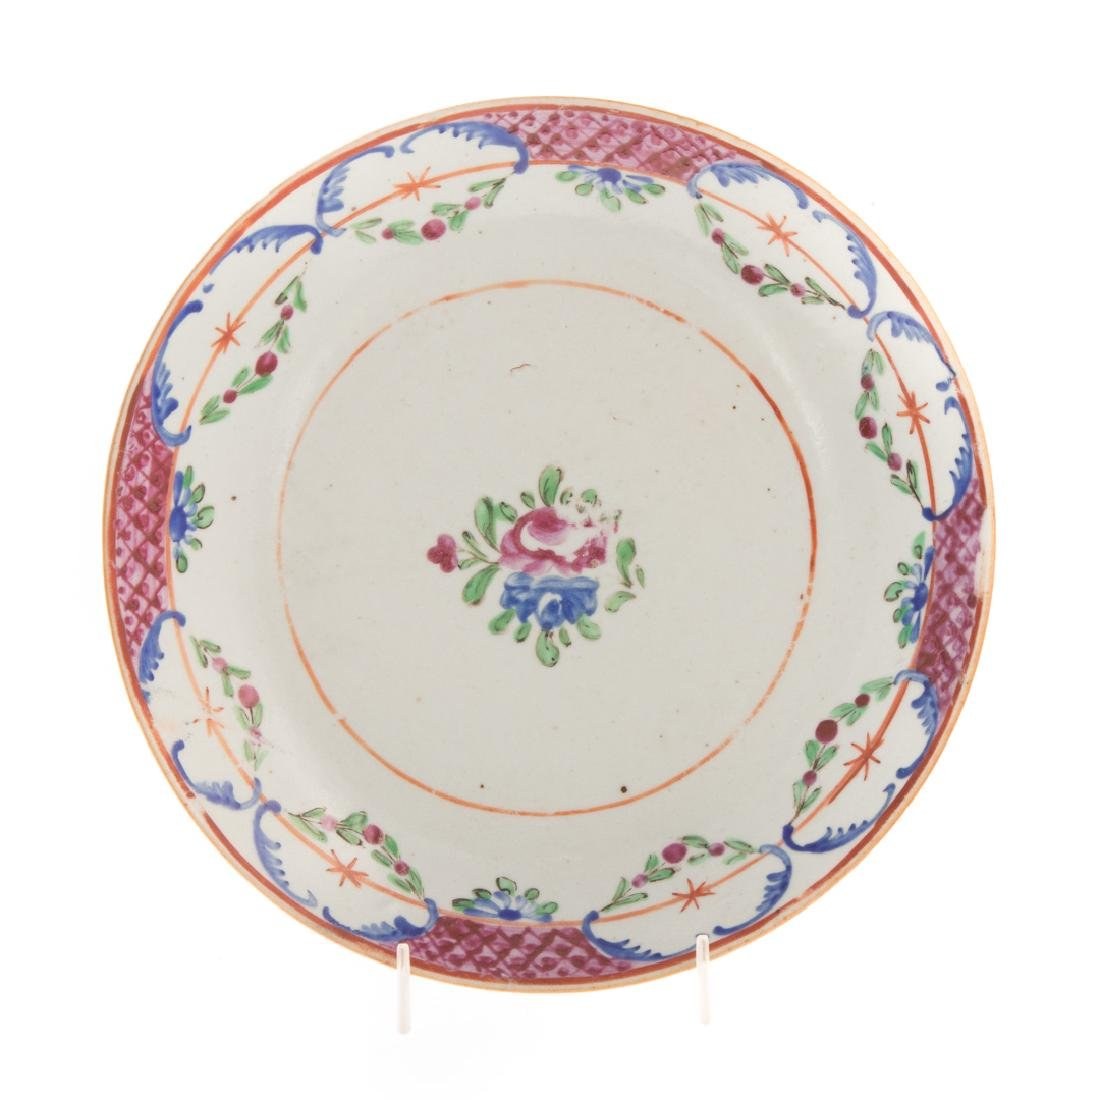 Six Chinese Export porcelain plates - 2